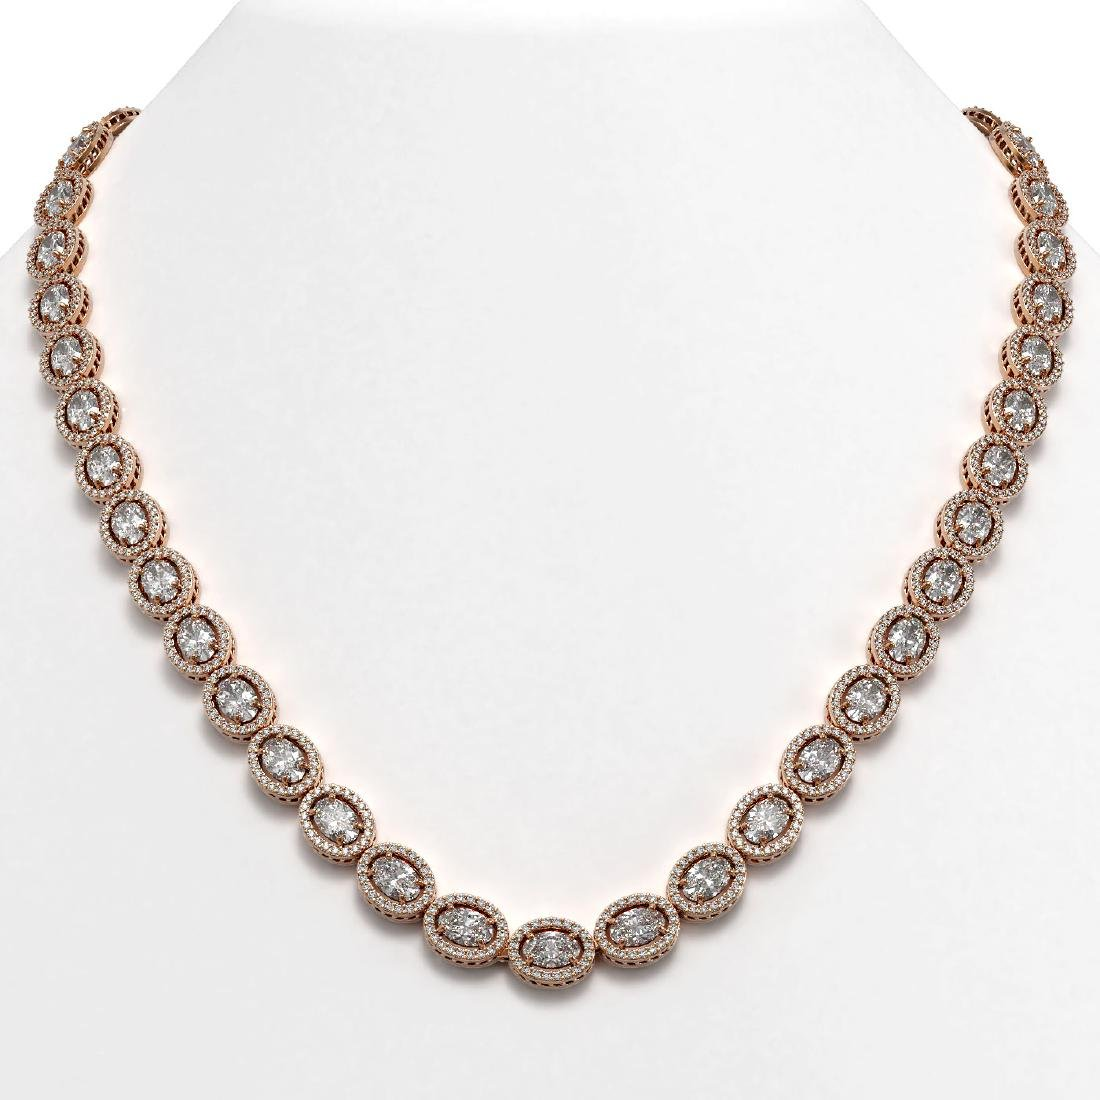 34.96 CTW Oval Diamond Designer Necklace 18K Rose Gold